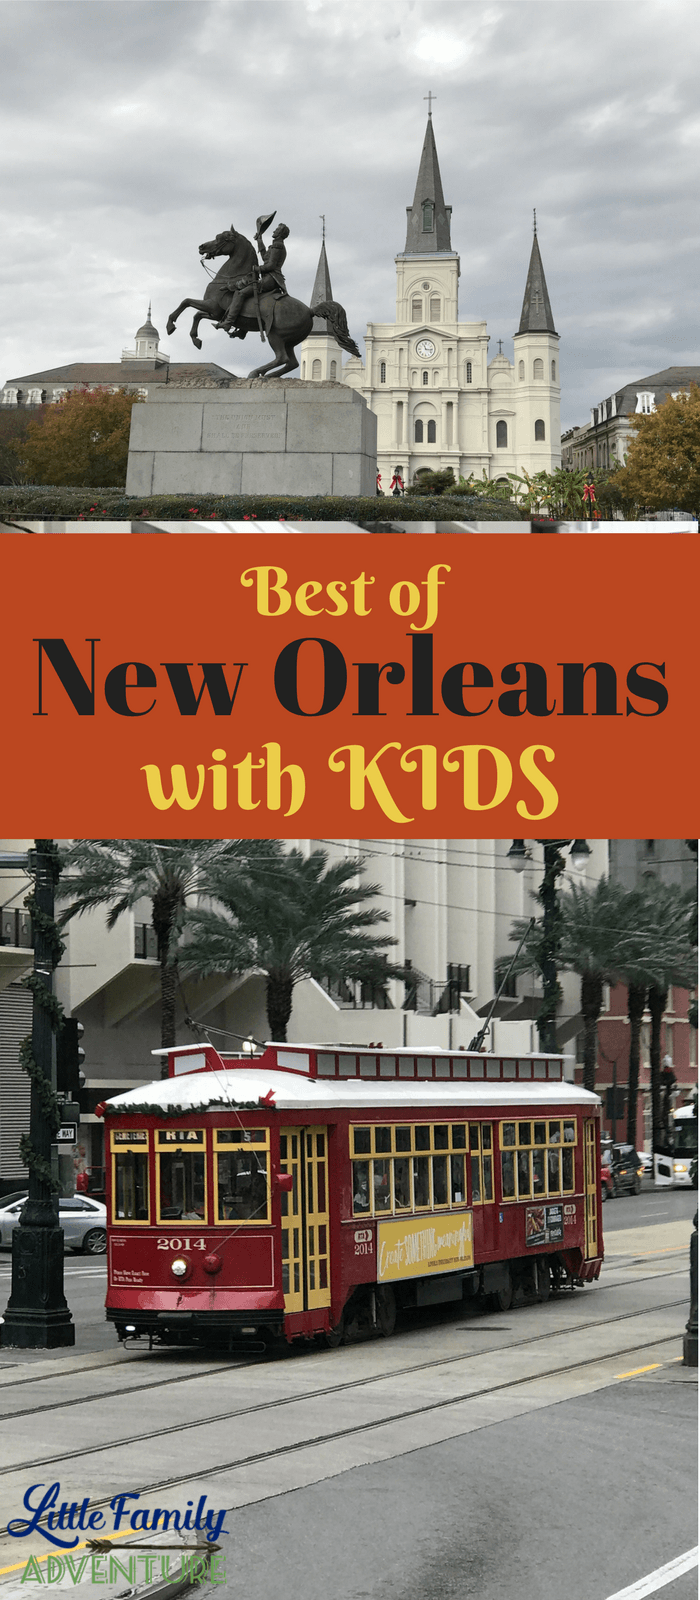 Best of New Orleans with Kids in 3 Days - NOLA is a family friendly destination filled with attractions, restaurants, and events for all ages.